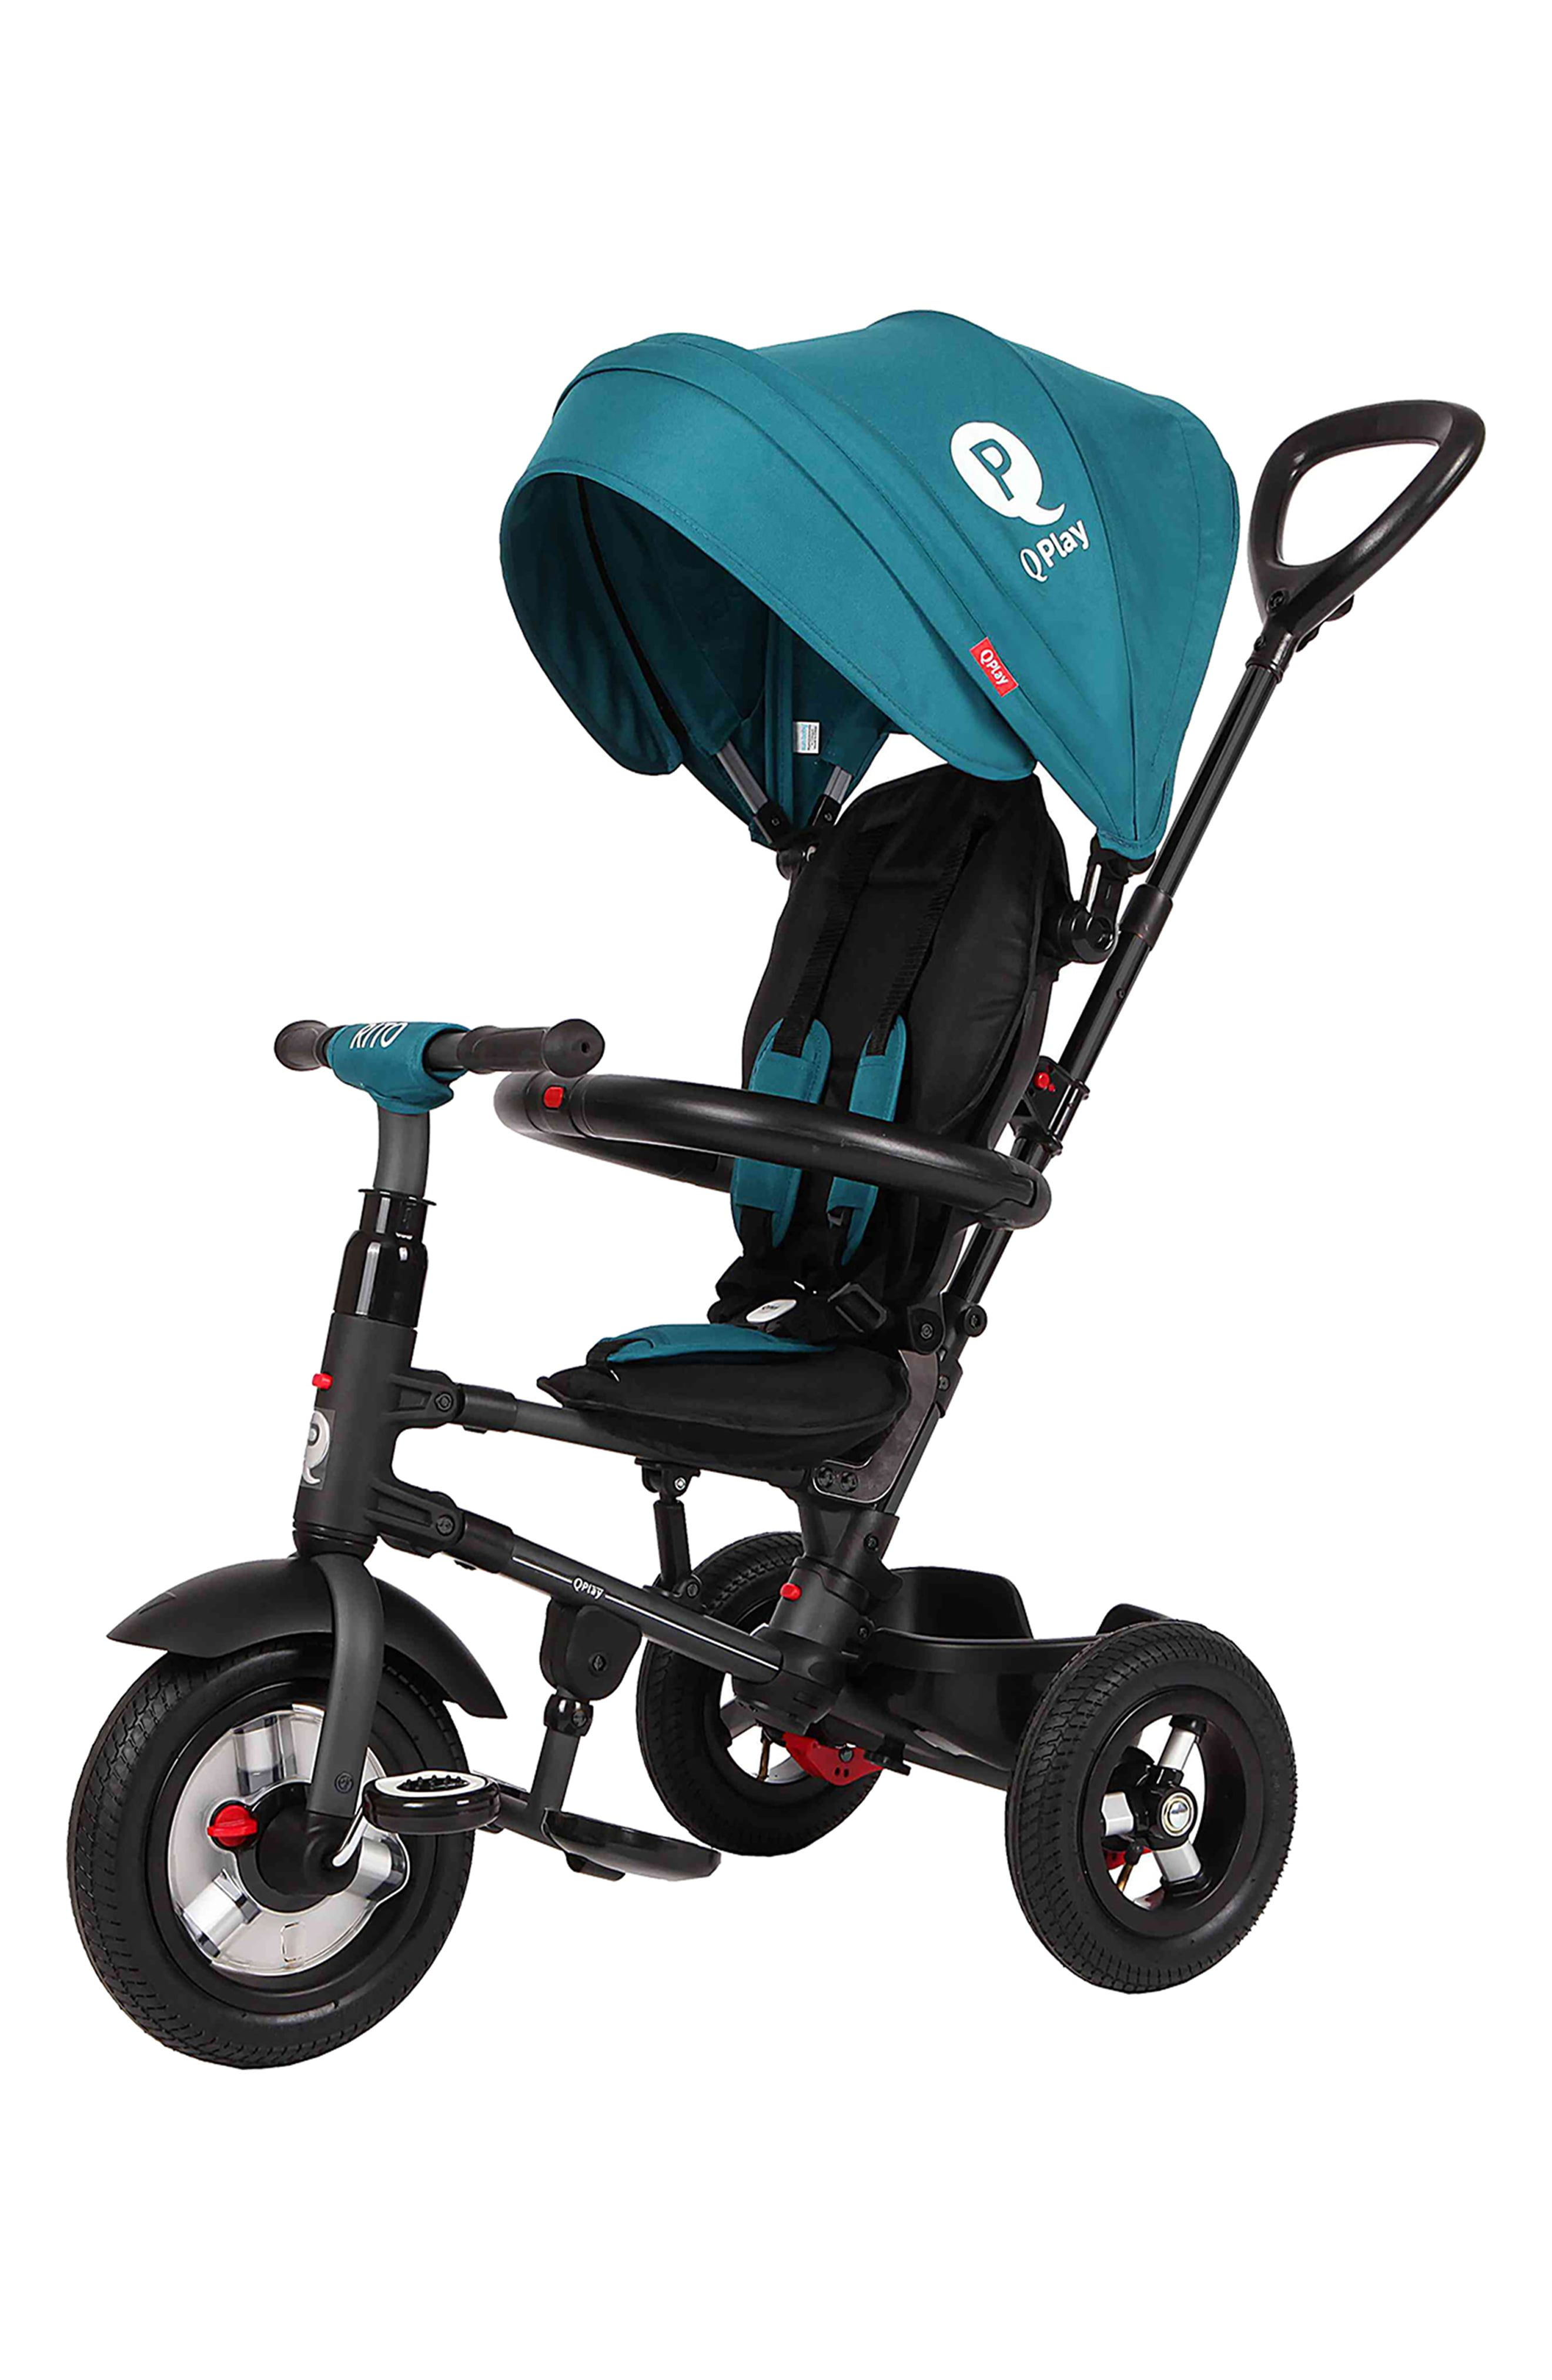 Rito Plus Air Tire Adjustable Compact Folding Trike Baby Stroller Teal NEW